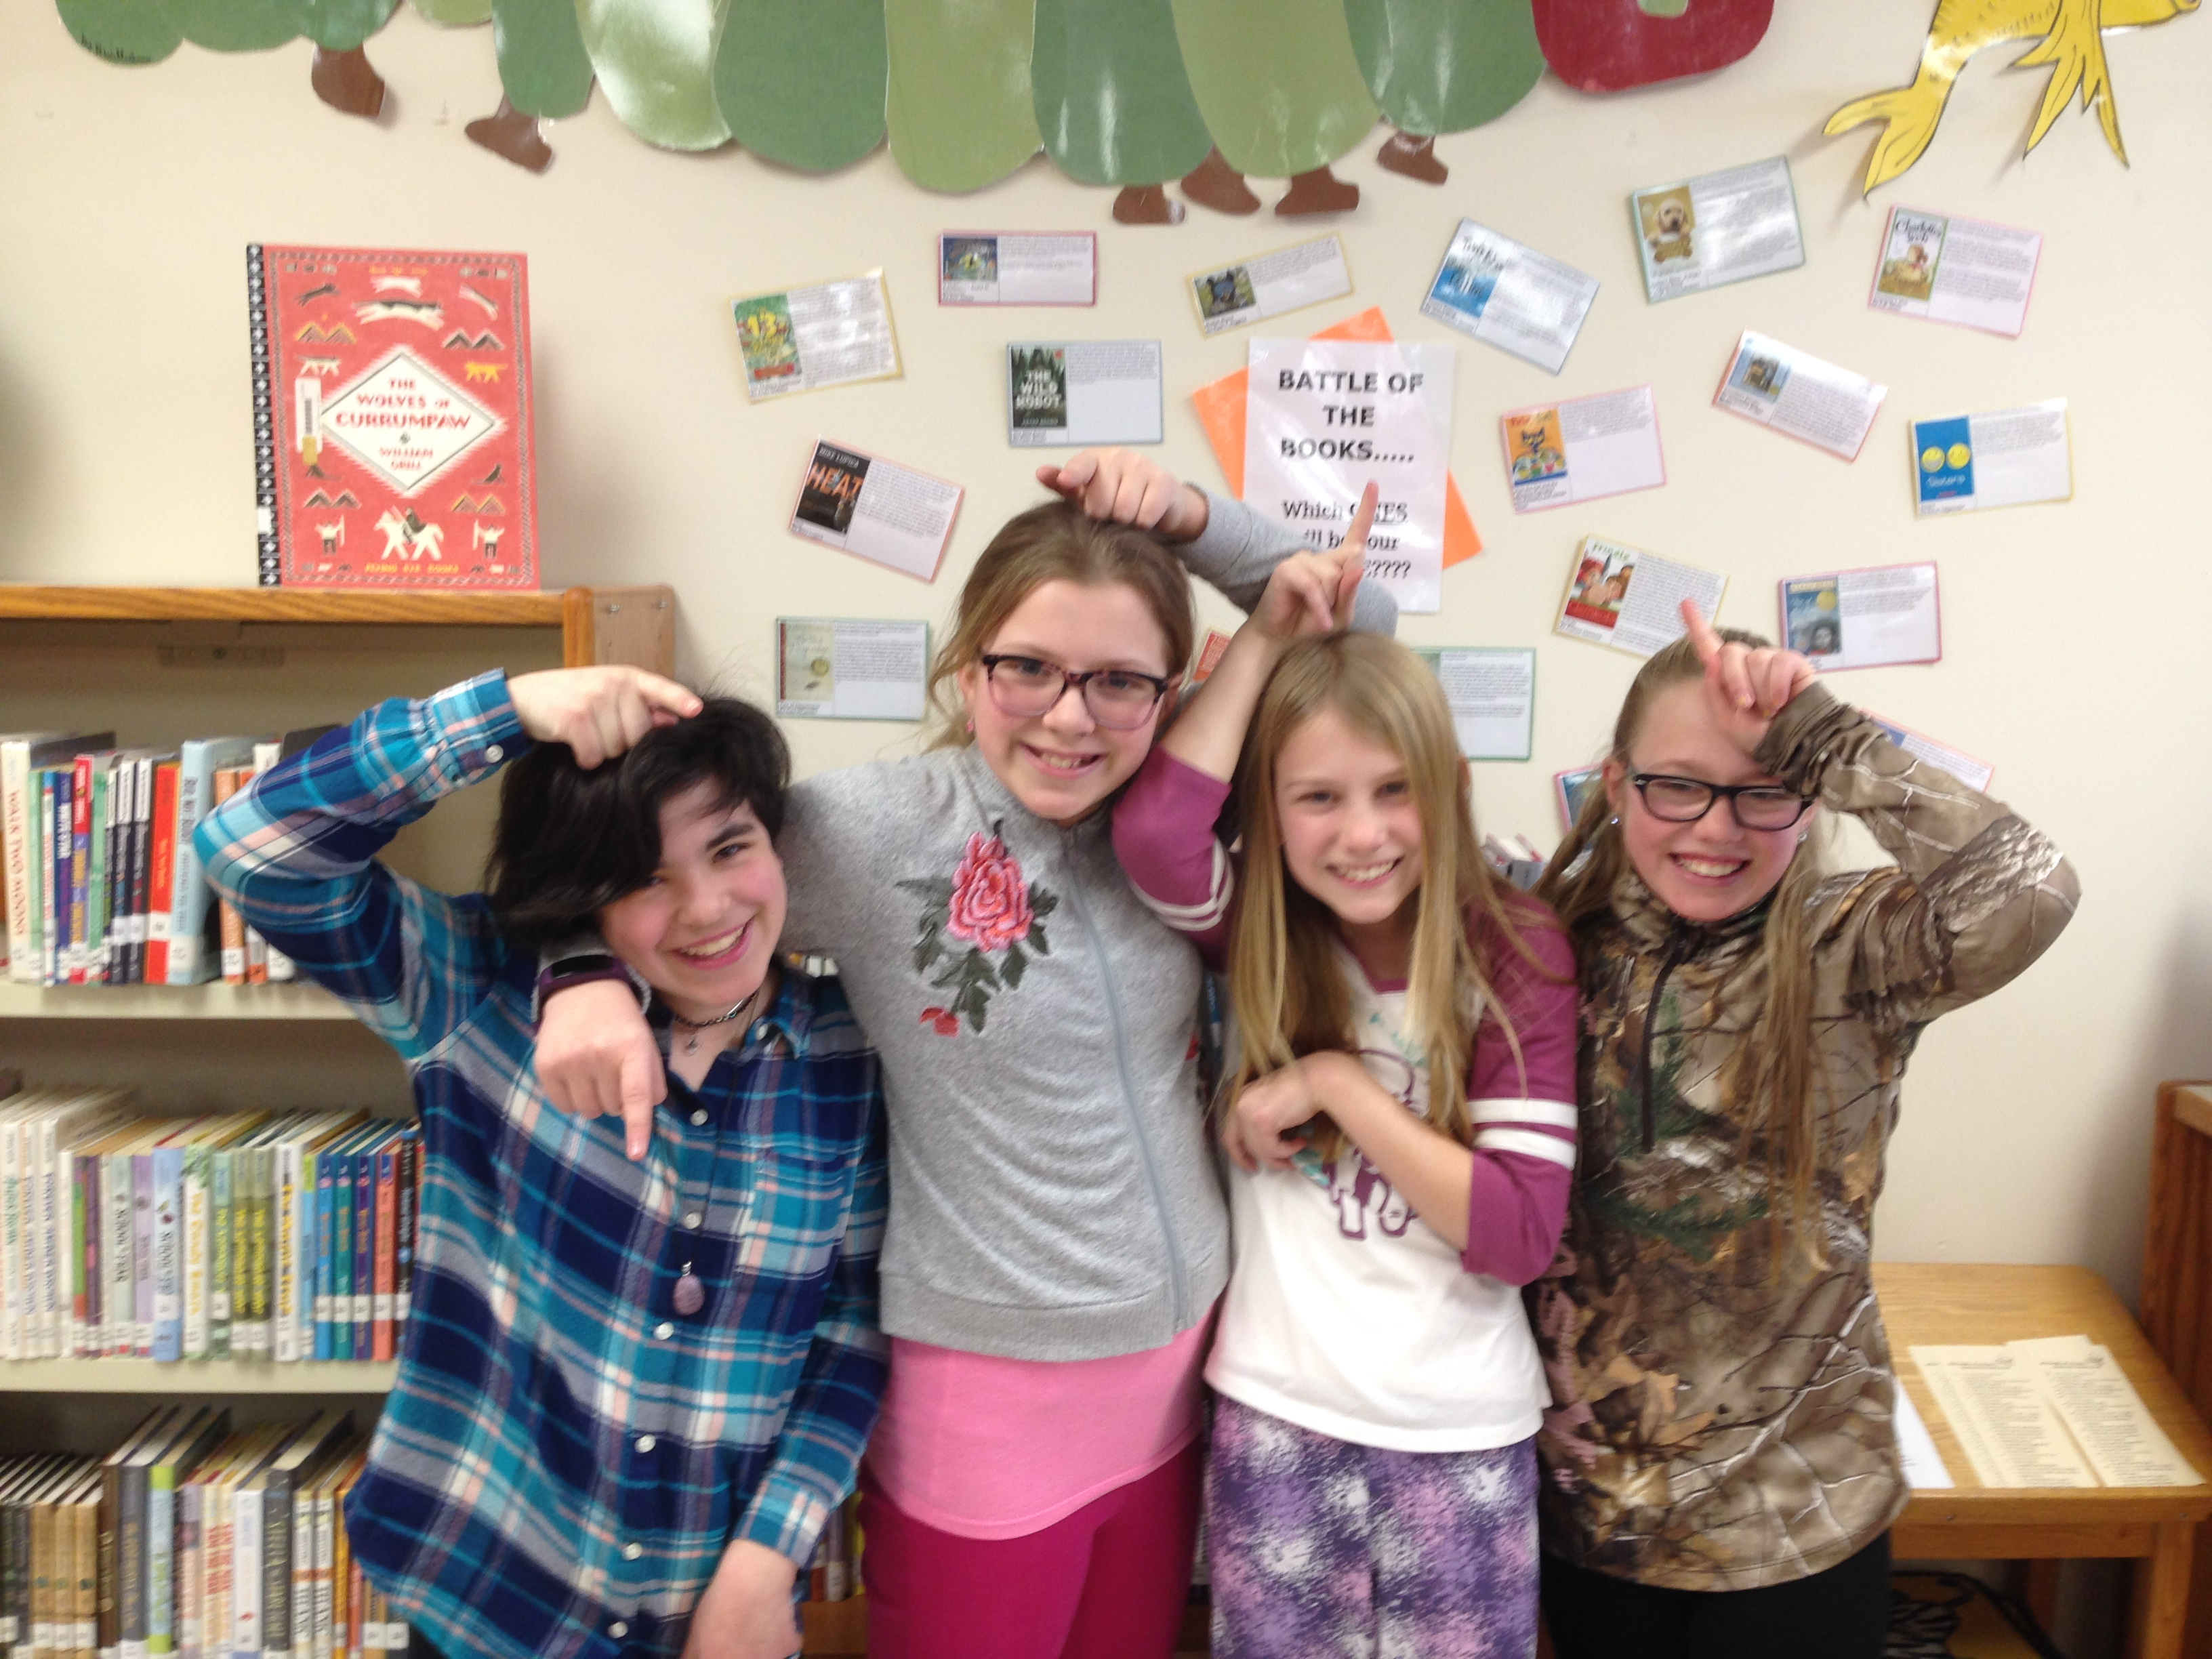 Battle of the Books Team - The Sparkling Unicorns, comprised of 5th graders Skylar, Ava,  Stella, and Isabel won the i4L Battle of the Books competition last week!  They also completed in the state battle as the representatives from i4L